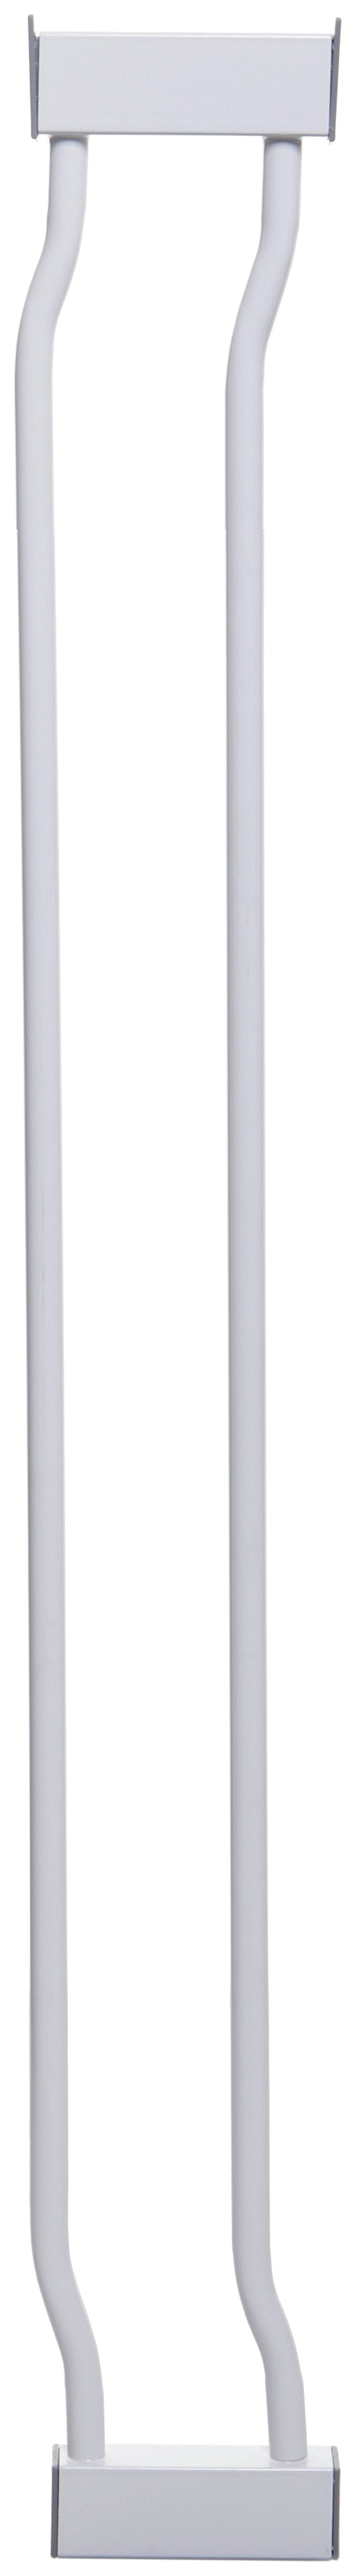 Image of Dreambaby Extra Tall 9cm Wide Gate Extension - White.